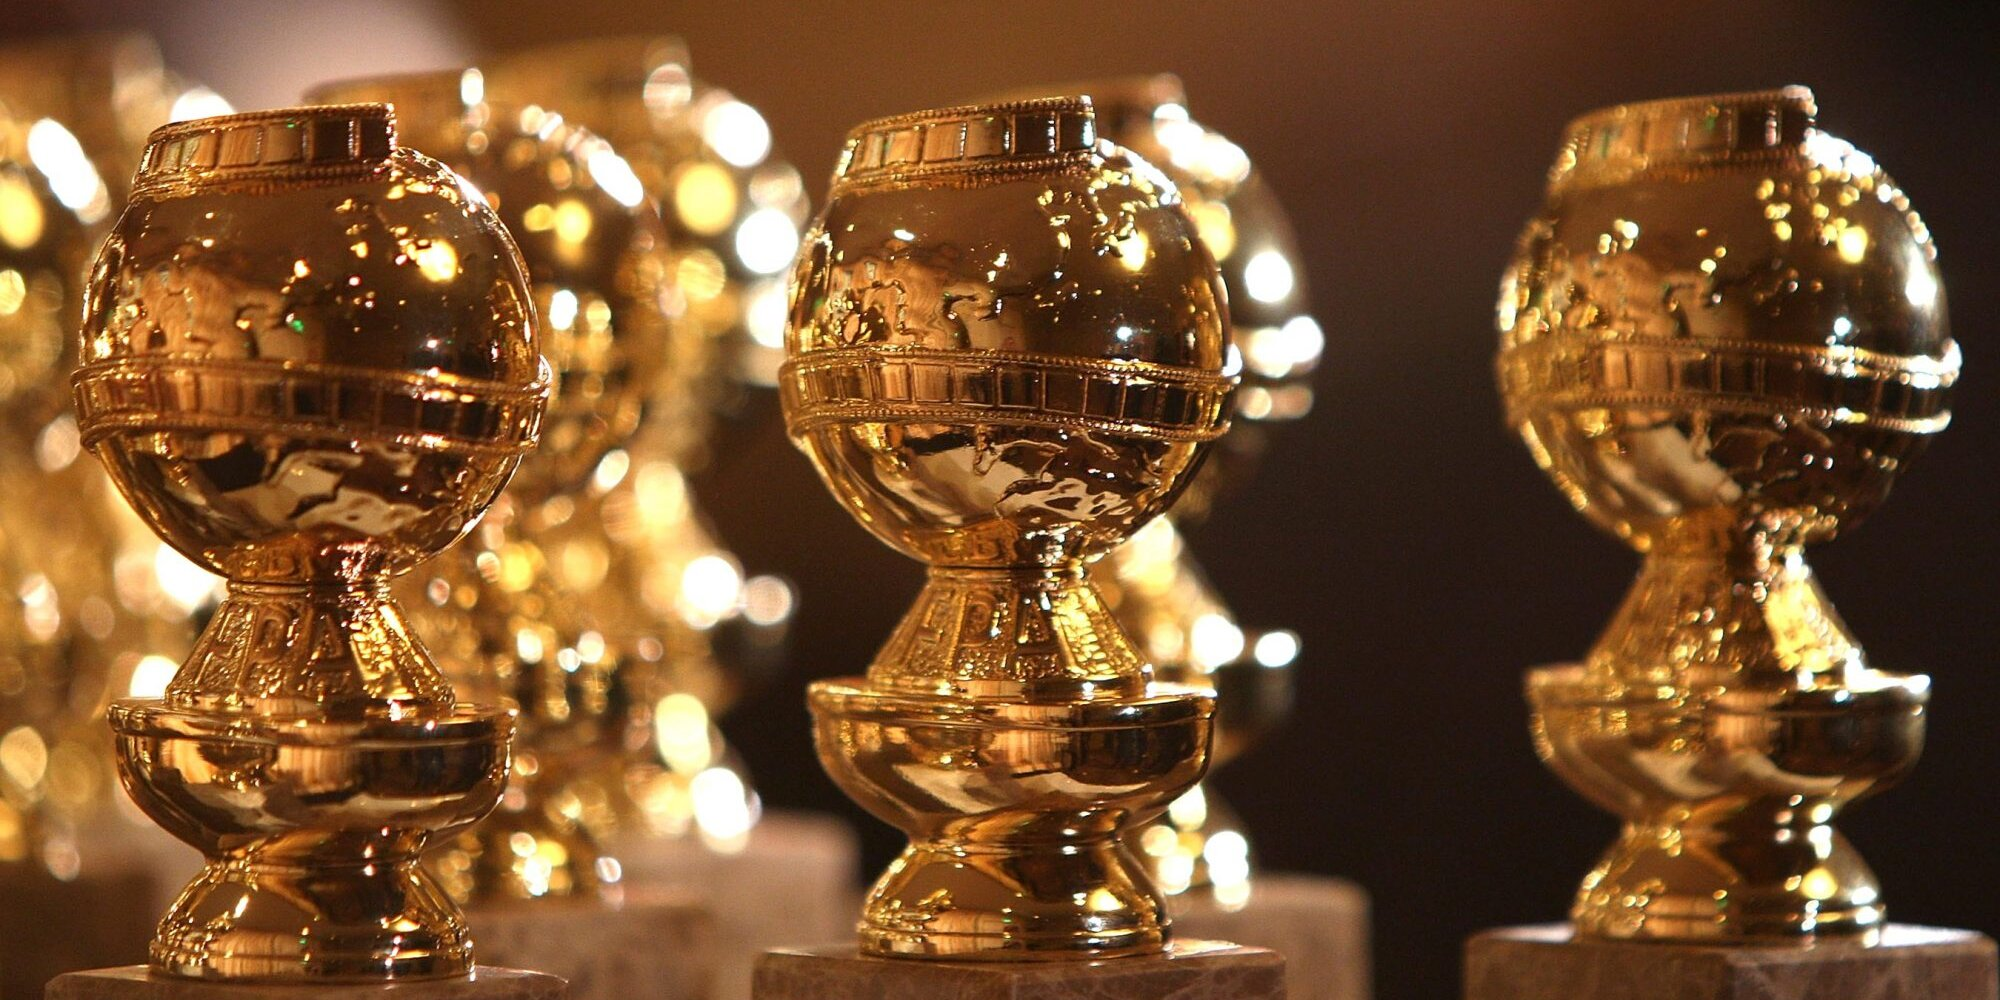 Two Journalists resign from HFPA, calling organization behind the Golden Globes, 'toxic'.jpg